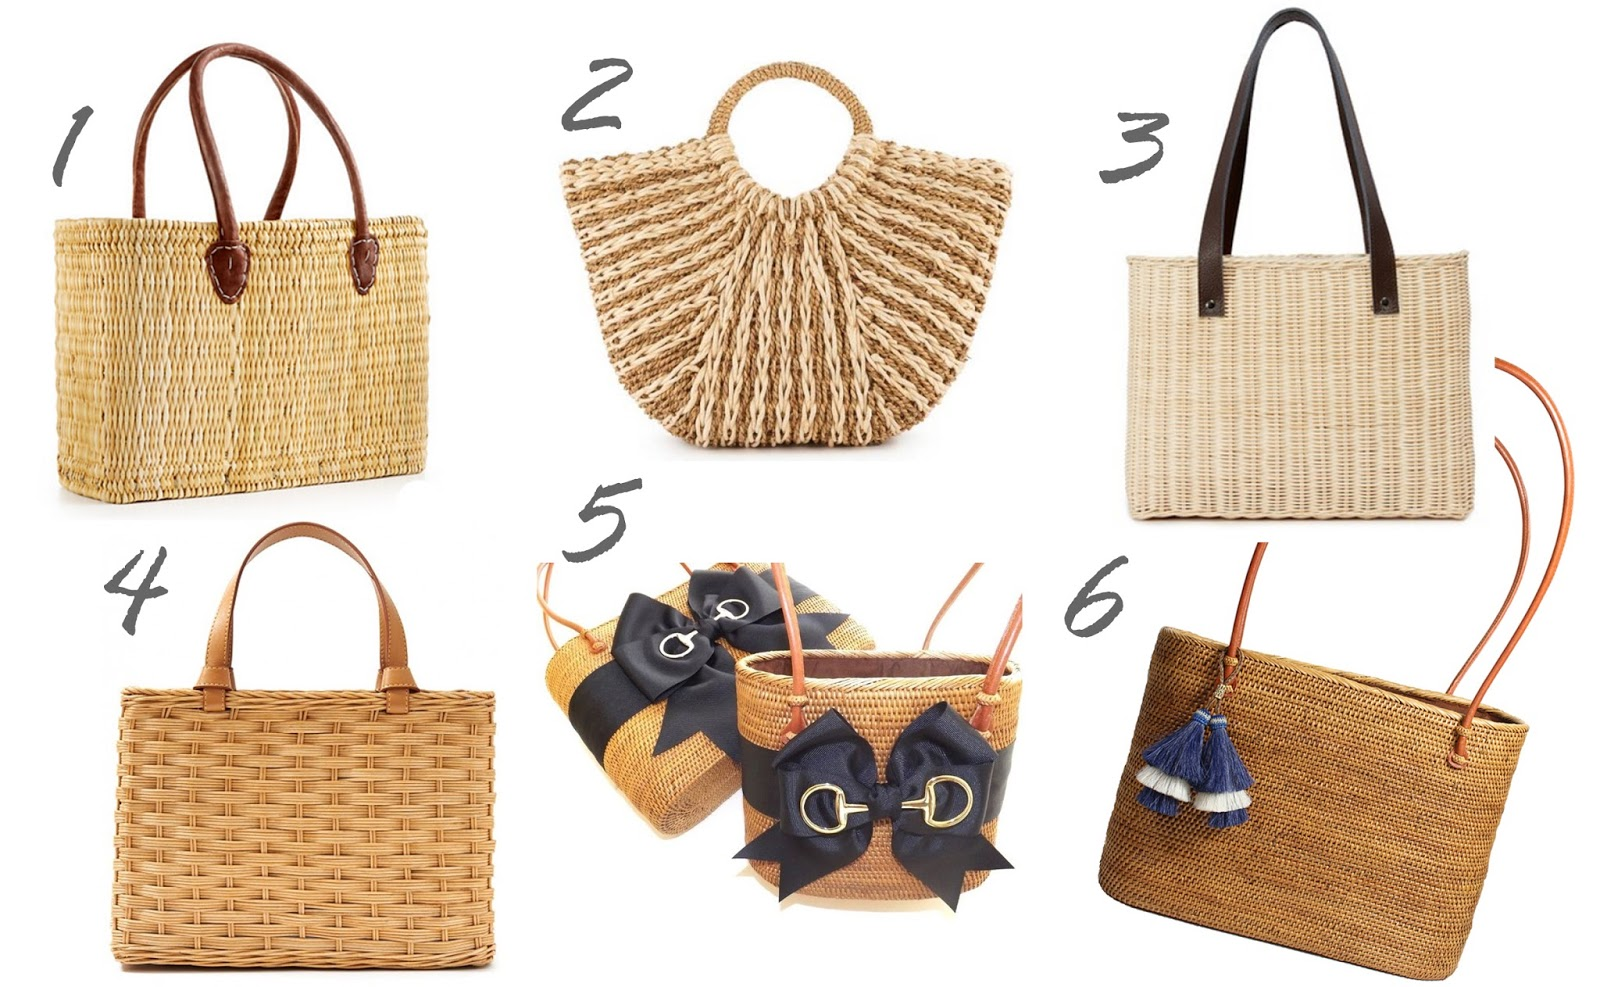 Bosom buddy bags, wicker totes, wicker tote handbags, straw tote, and straw tote handbags